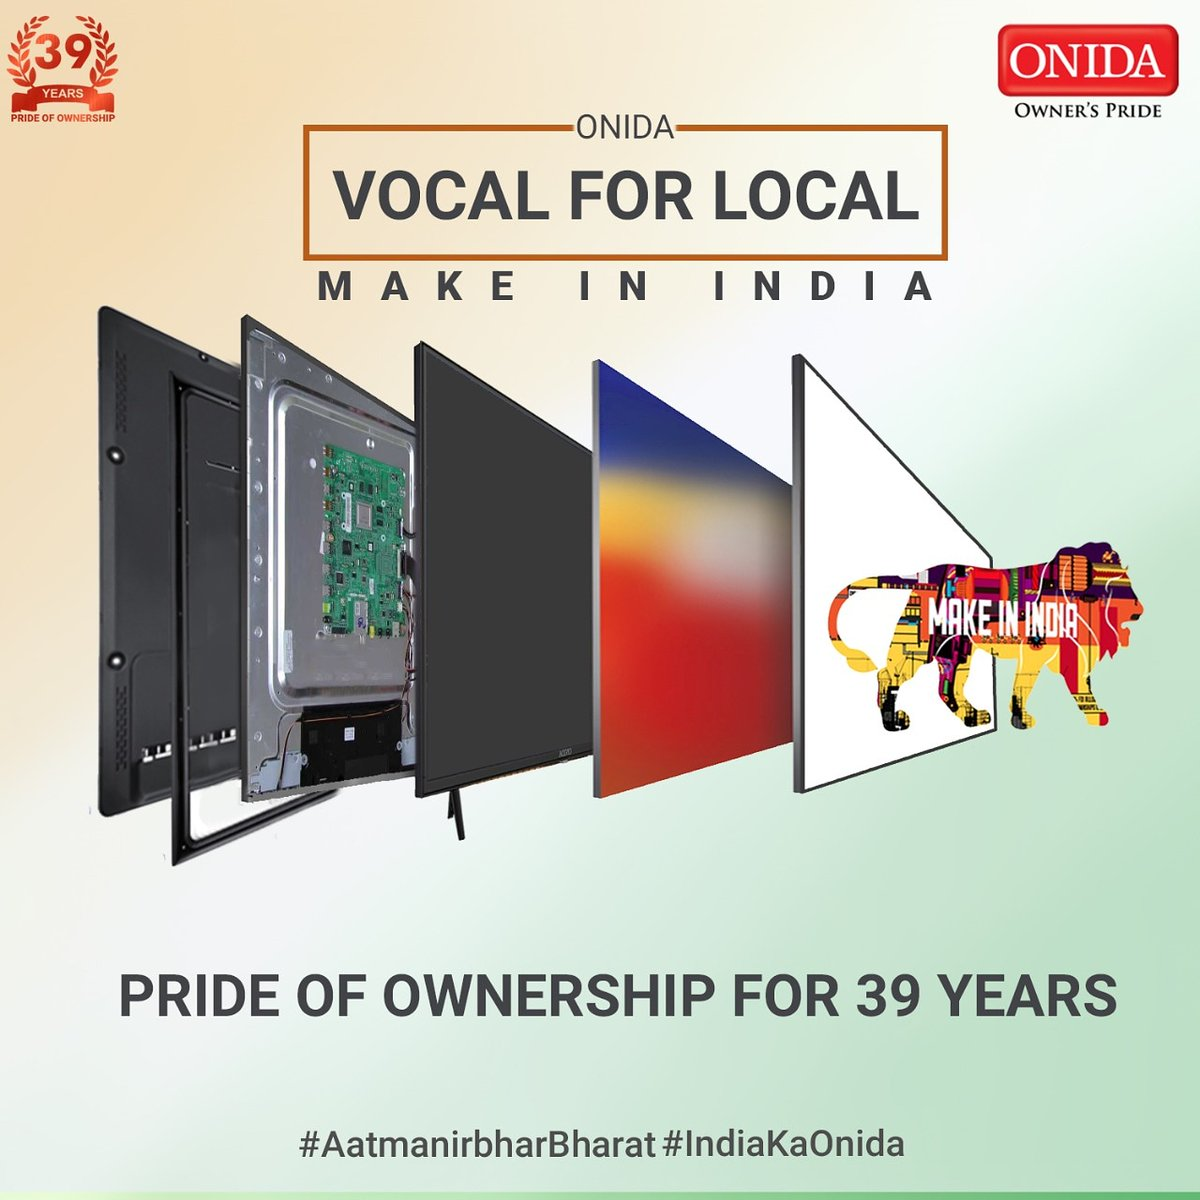 Excellence in Innovation and Pride of ownership for 39 years, We will always be #IndiaKaOnida. - https://t.co/4fQiyrqGPn https://t.co/MCgoSdwE5X